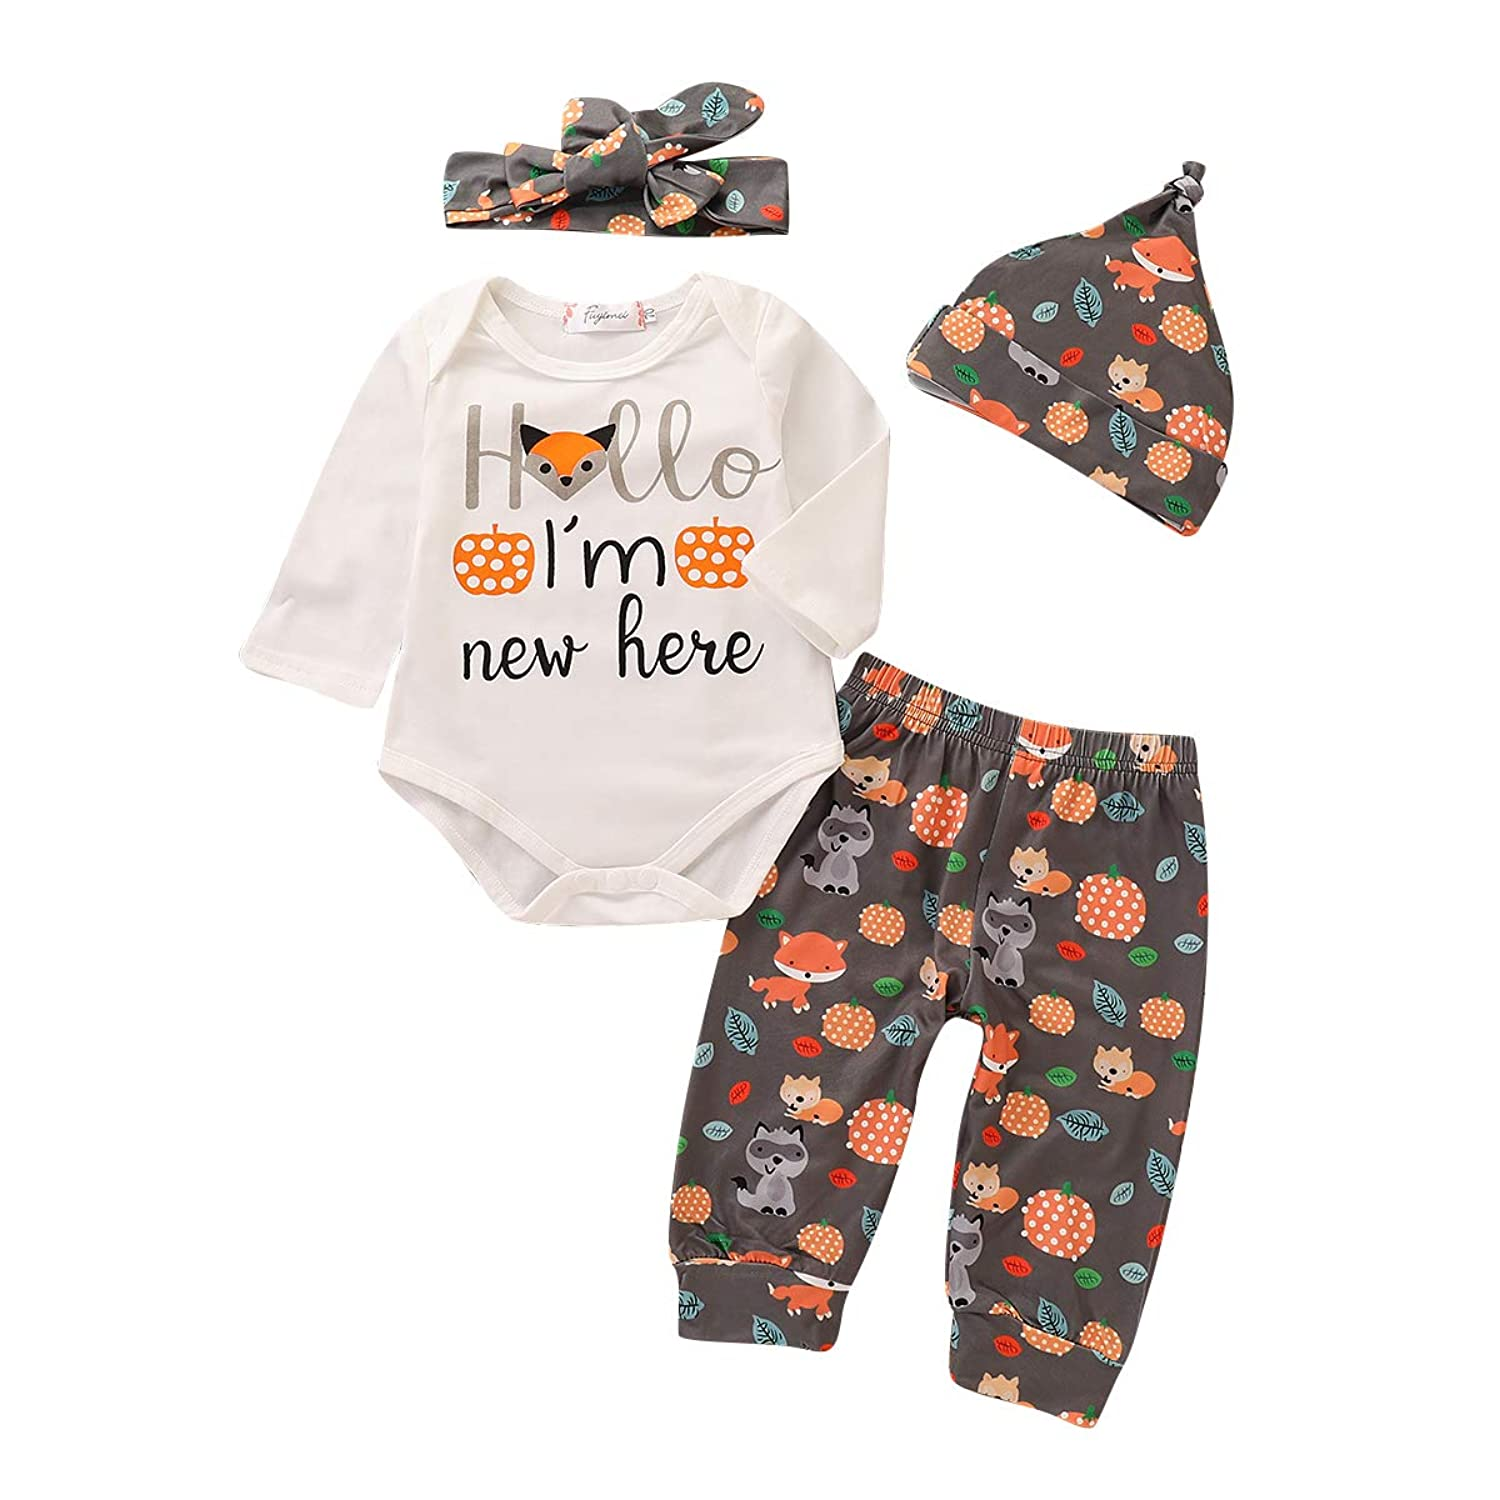 0c6cb75e3 Novelty and fashion design for your little princess,long sleeve junpsuit, pant and hat set with headband ✿ Infant toddlers baby girl ...